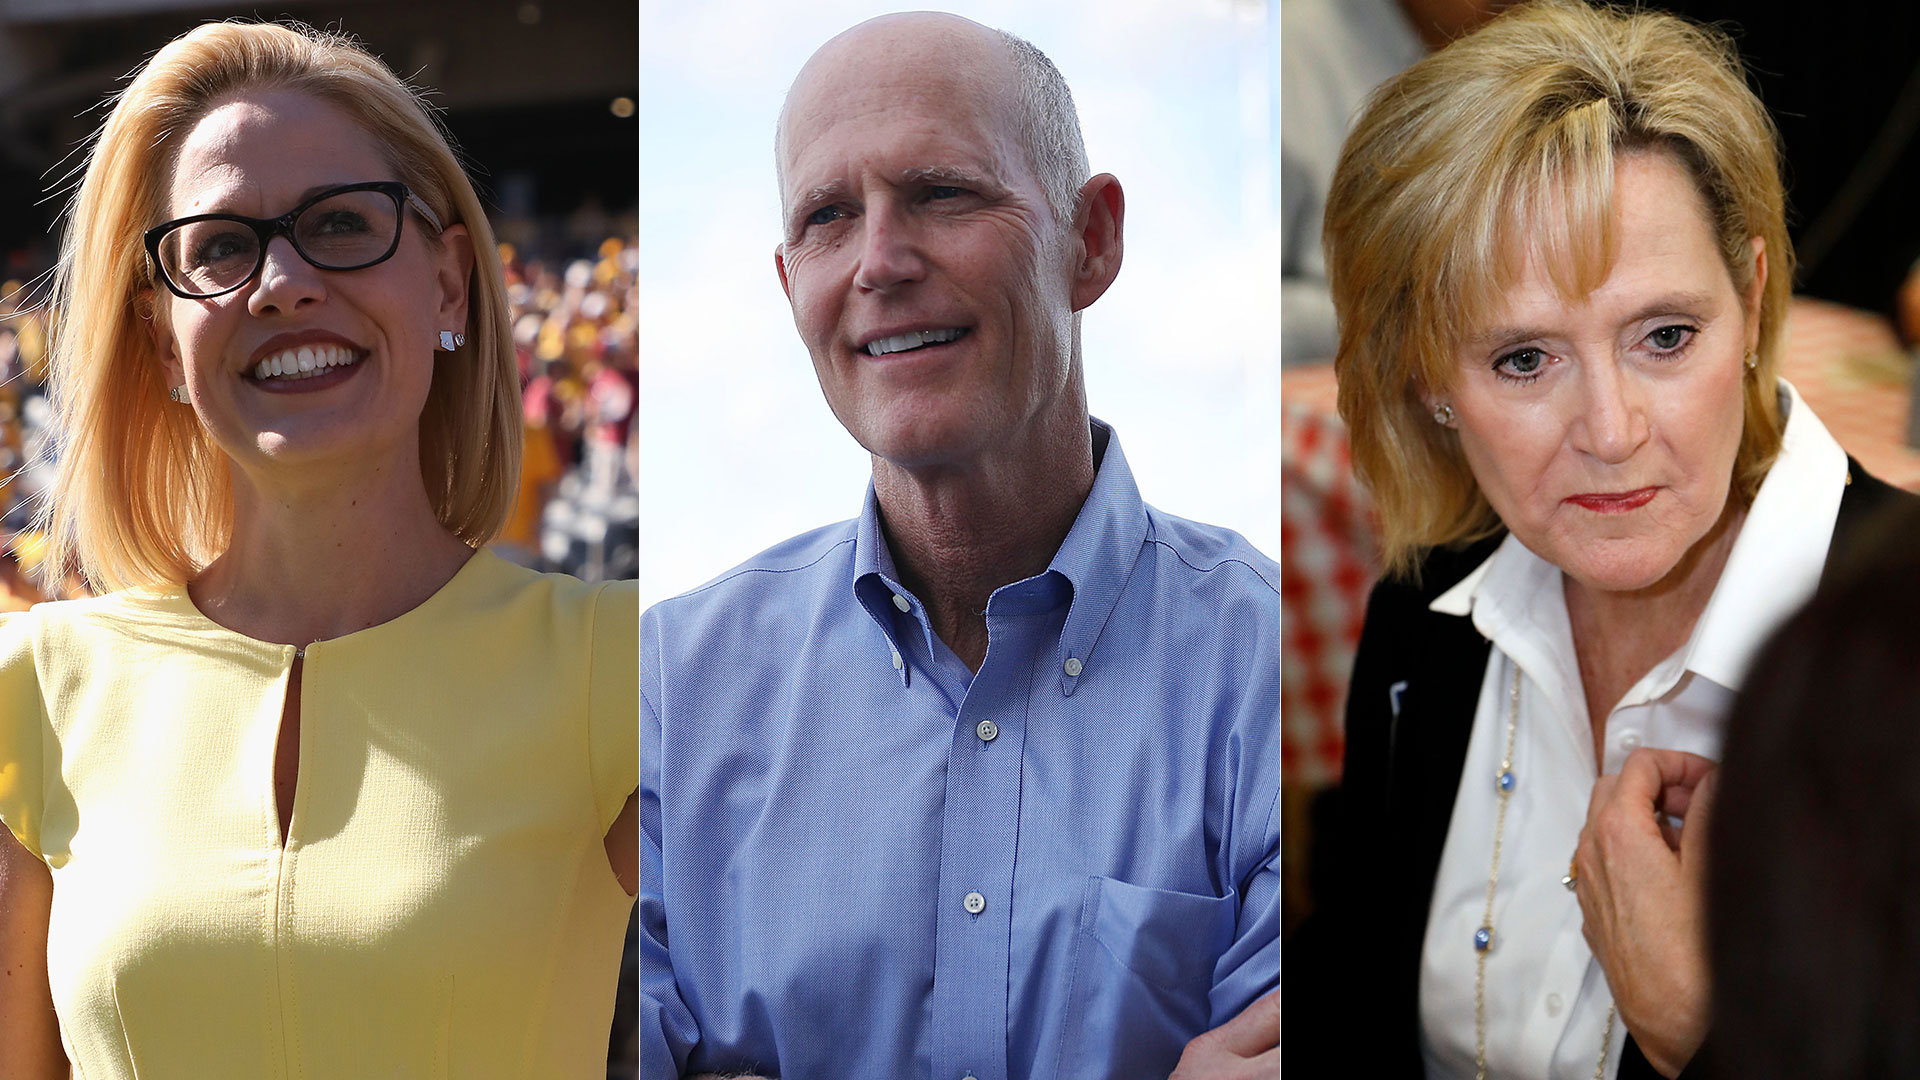 Kyrsten Sinema, Rick Scott y Cindy Hyde-Smith encabezan la disputa por bancas en Arizona, Florida y Mississippi